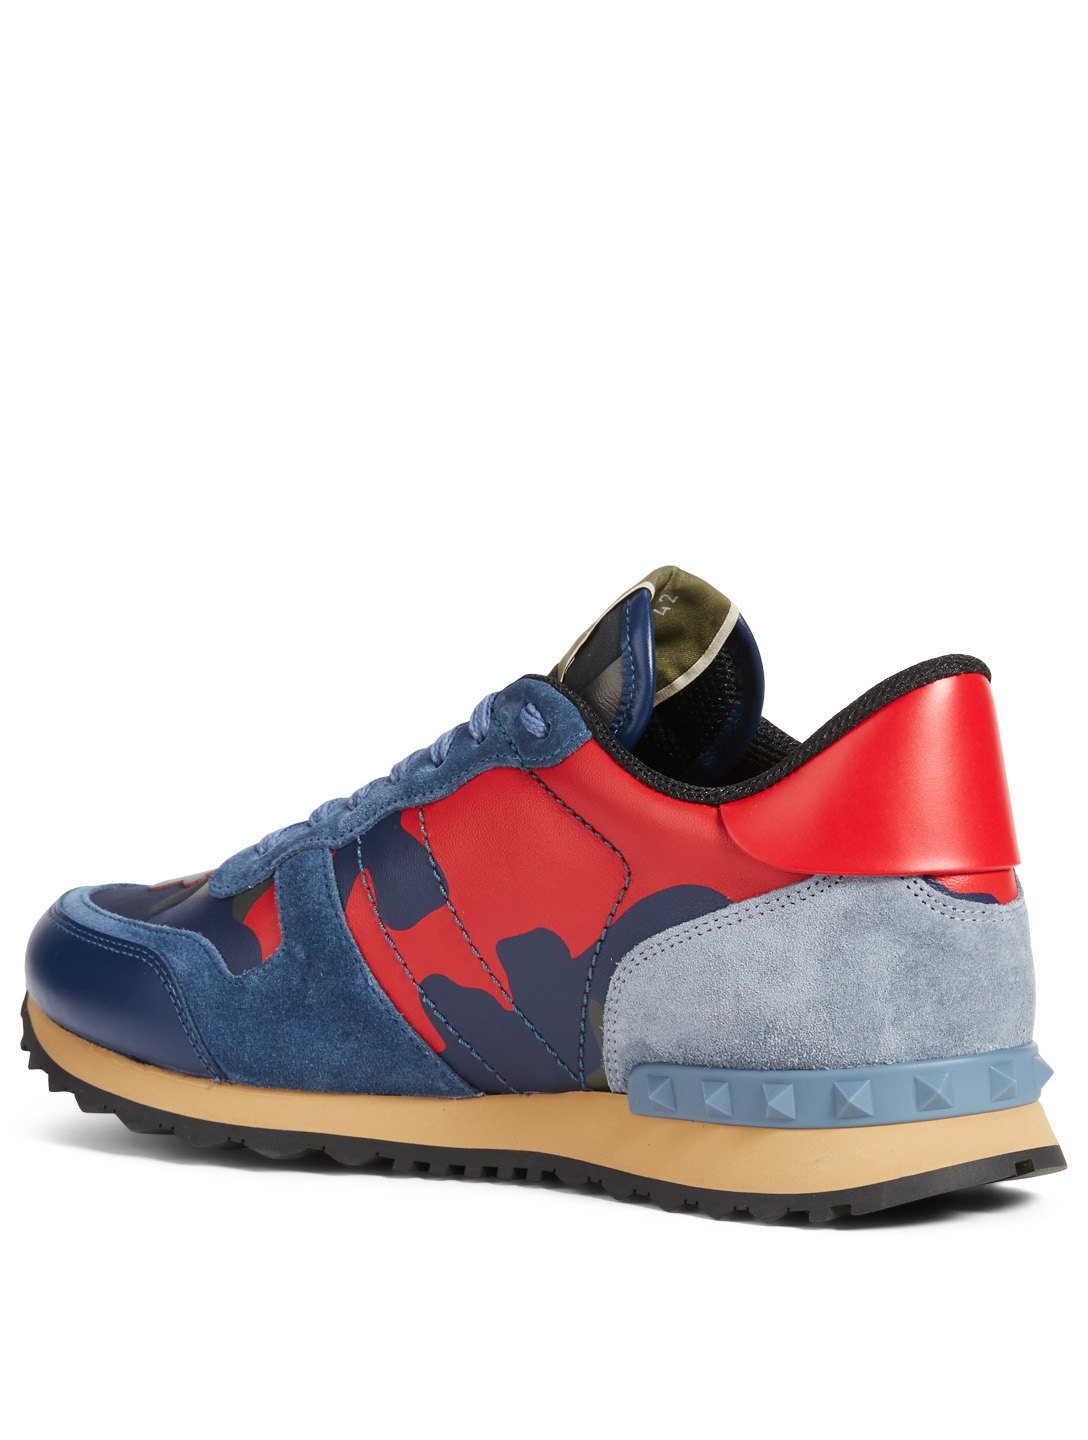 VALENTINO GARAVANI Rockrunner Leather And Fabric Sneakers In Camouflage Men's Blue